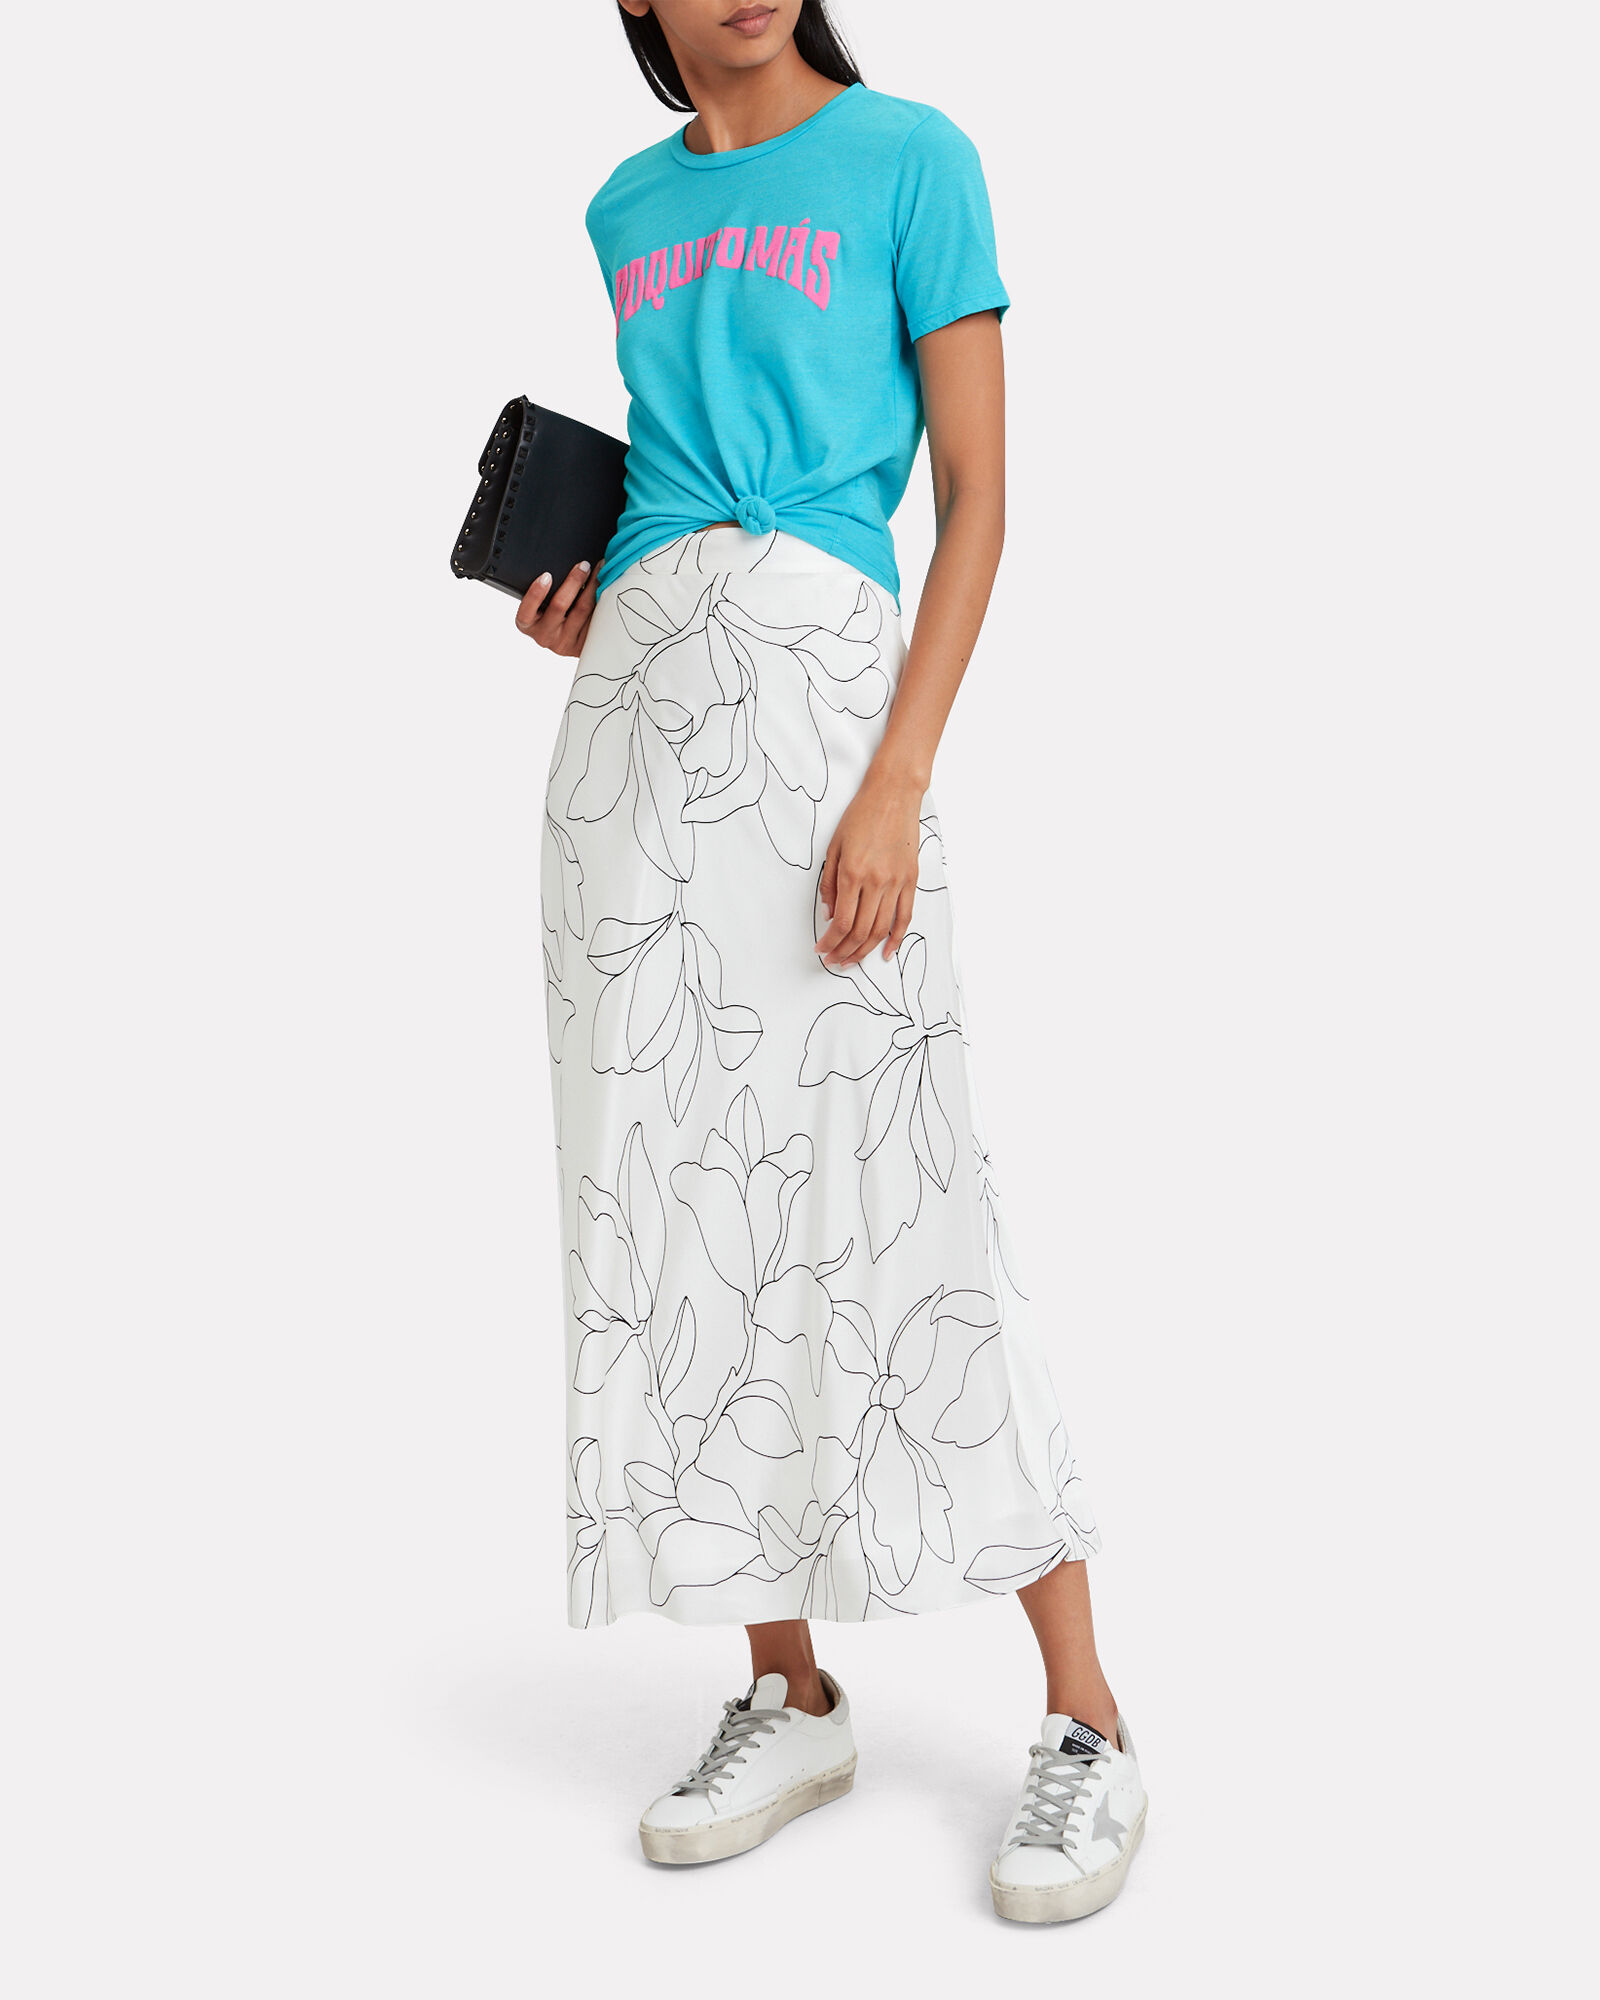 The Boxy Goodie Tee, TURQUOISE, hi-res